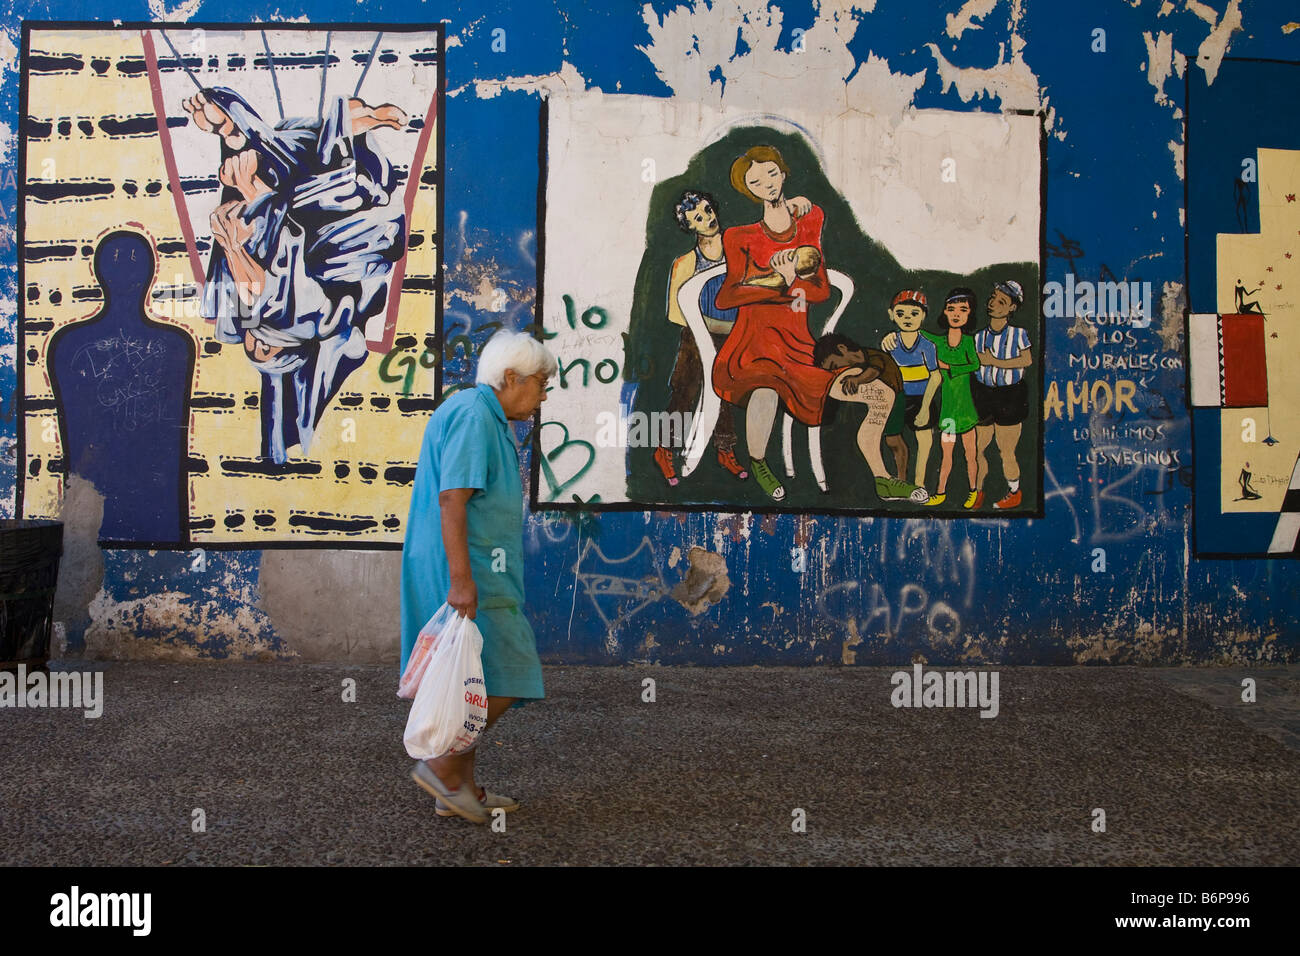 Old lady with shopping bags passes street art in La Boca Buenos Aires Argentina South America - Stock Image